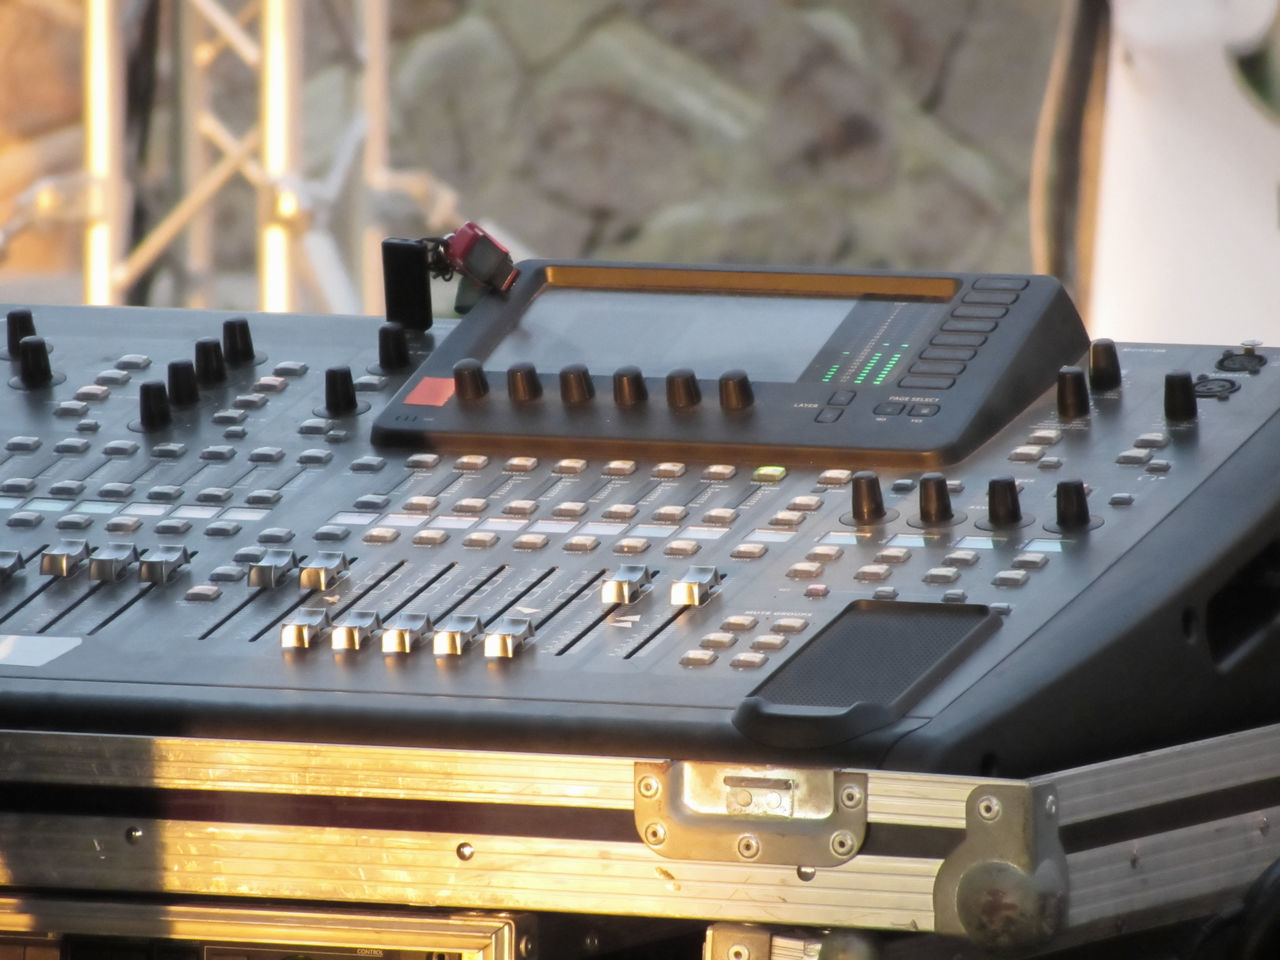 Professional audio mixing console with faders and adjusting knobs for party outdoor at sunset Adjuster Audio Equipment Board Button Concert Console Desk Disco Dj Entertainment Equalizer Event Fader Knob Mixer Music Musical Equipment Outdoor Party Sound Sound Mixer Soundboard System Technology Volume